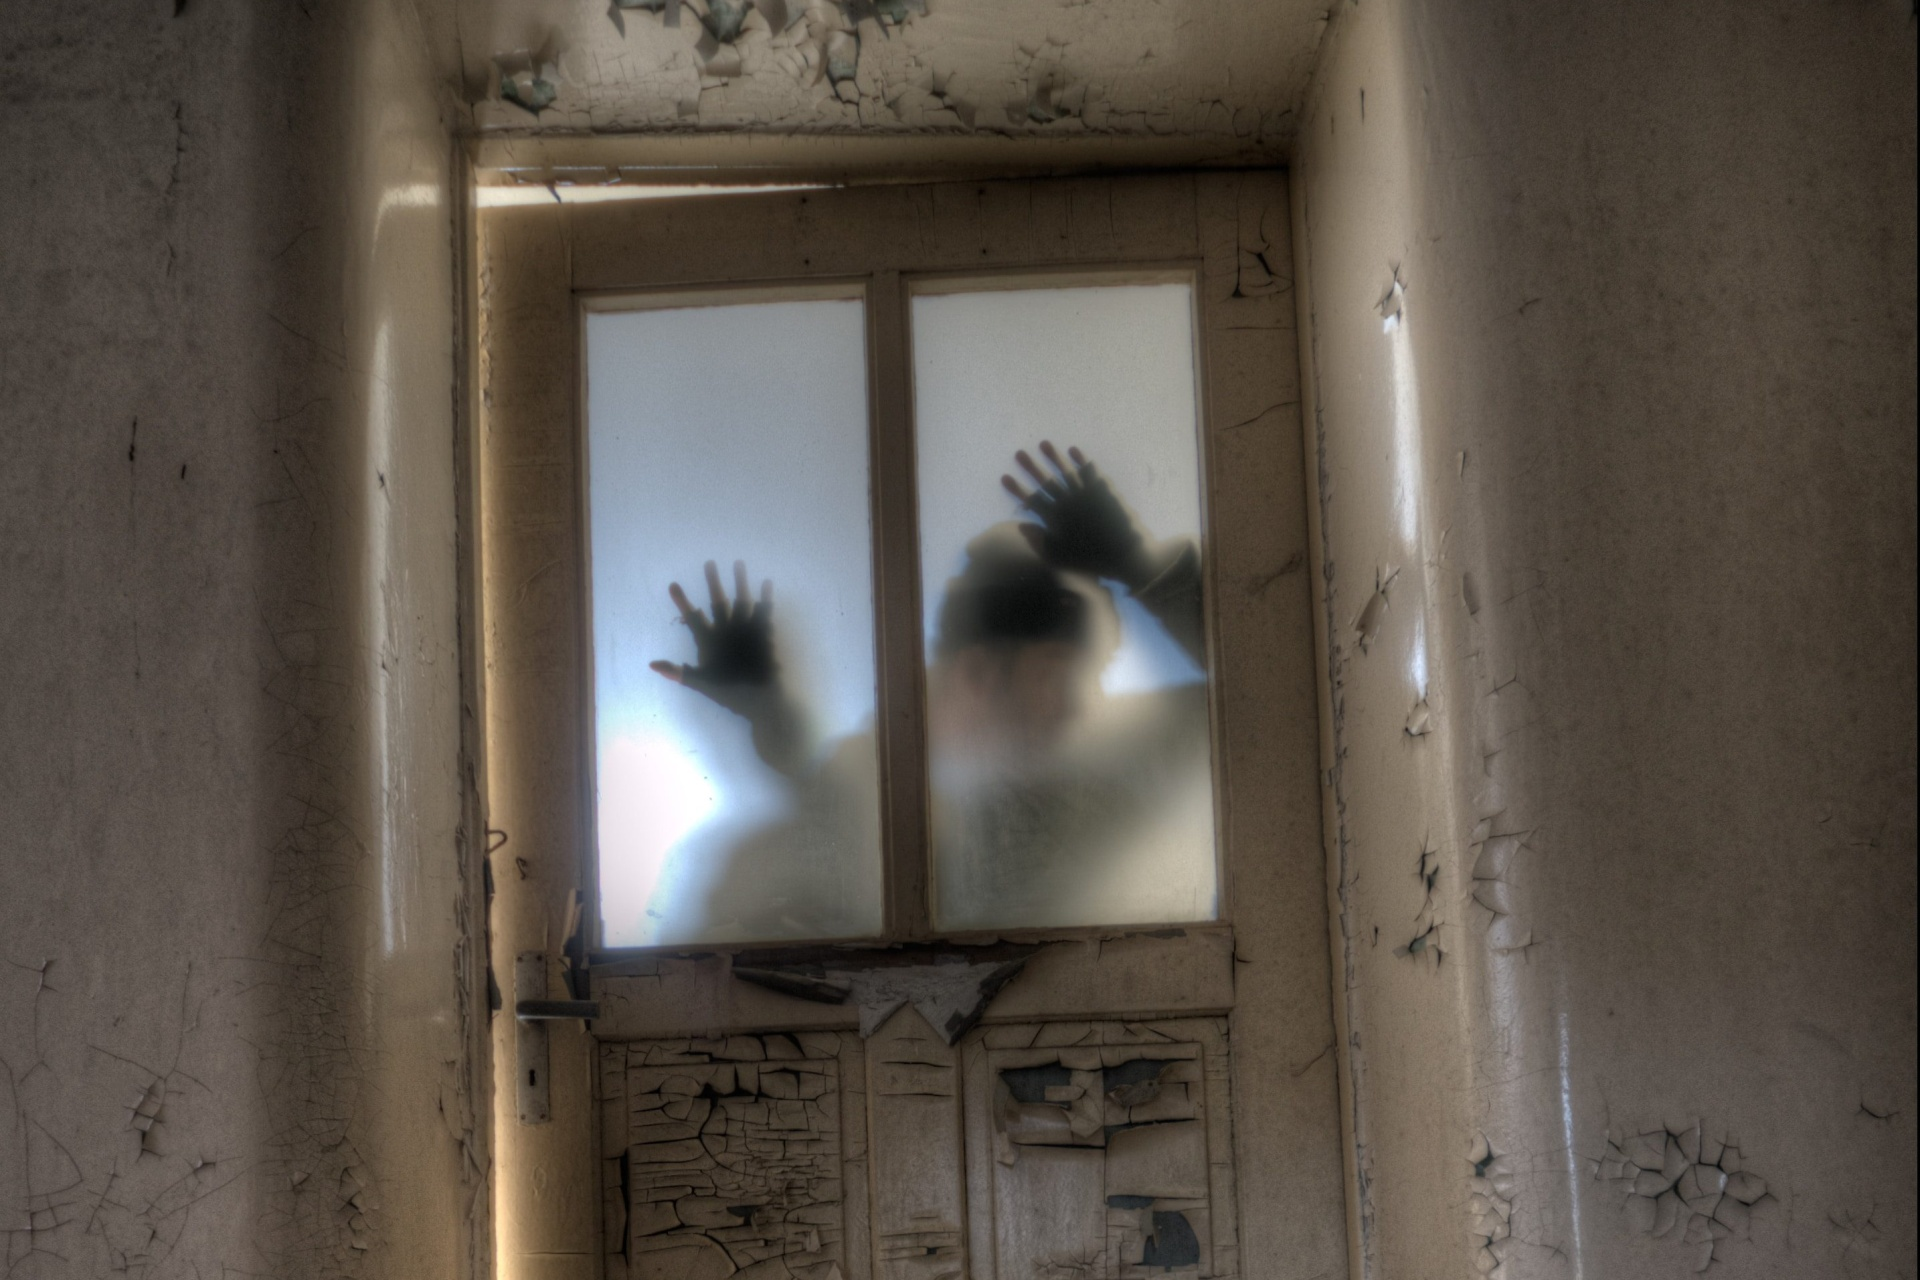 10 Spooky Videos To Watch When You Don't Have Time For A Whole Horror Movie